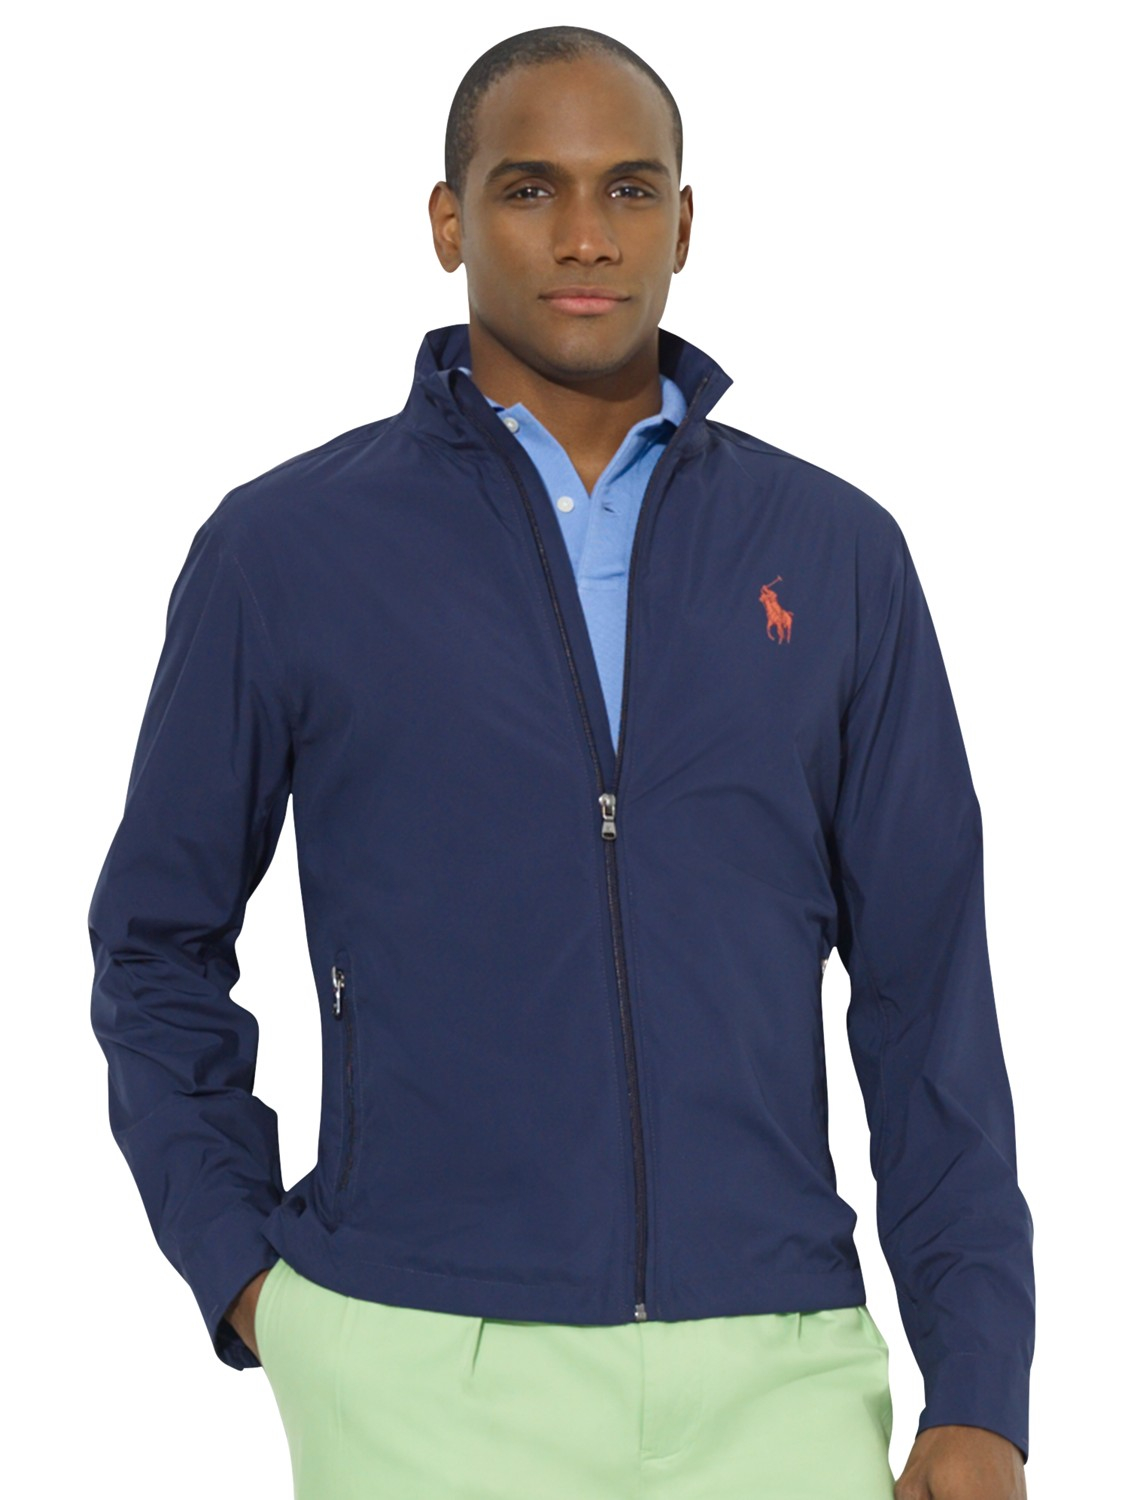 Barbour Sapper Jacket >> Polo Ralph Lauren Blouson Windbreaker Jacket in Blue for Men - Lyst